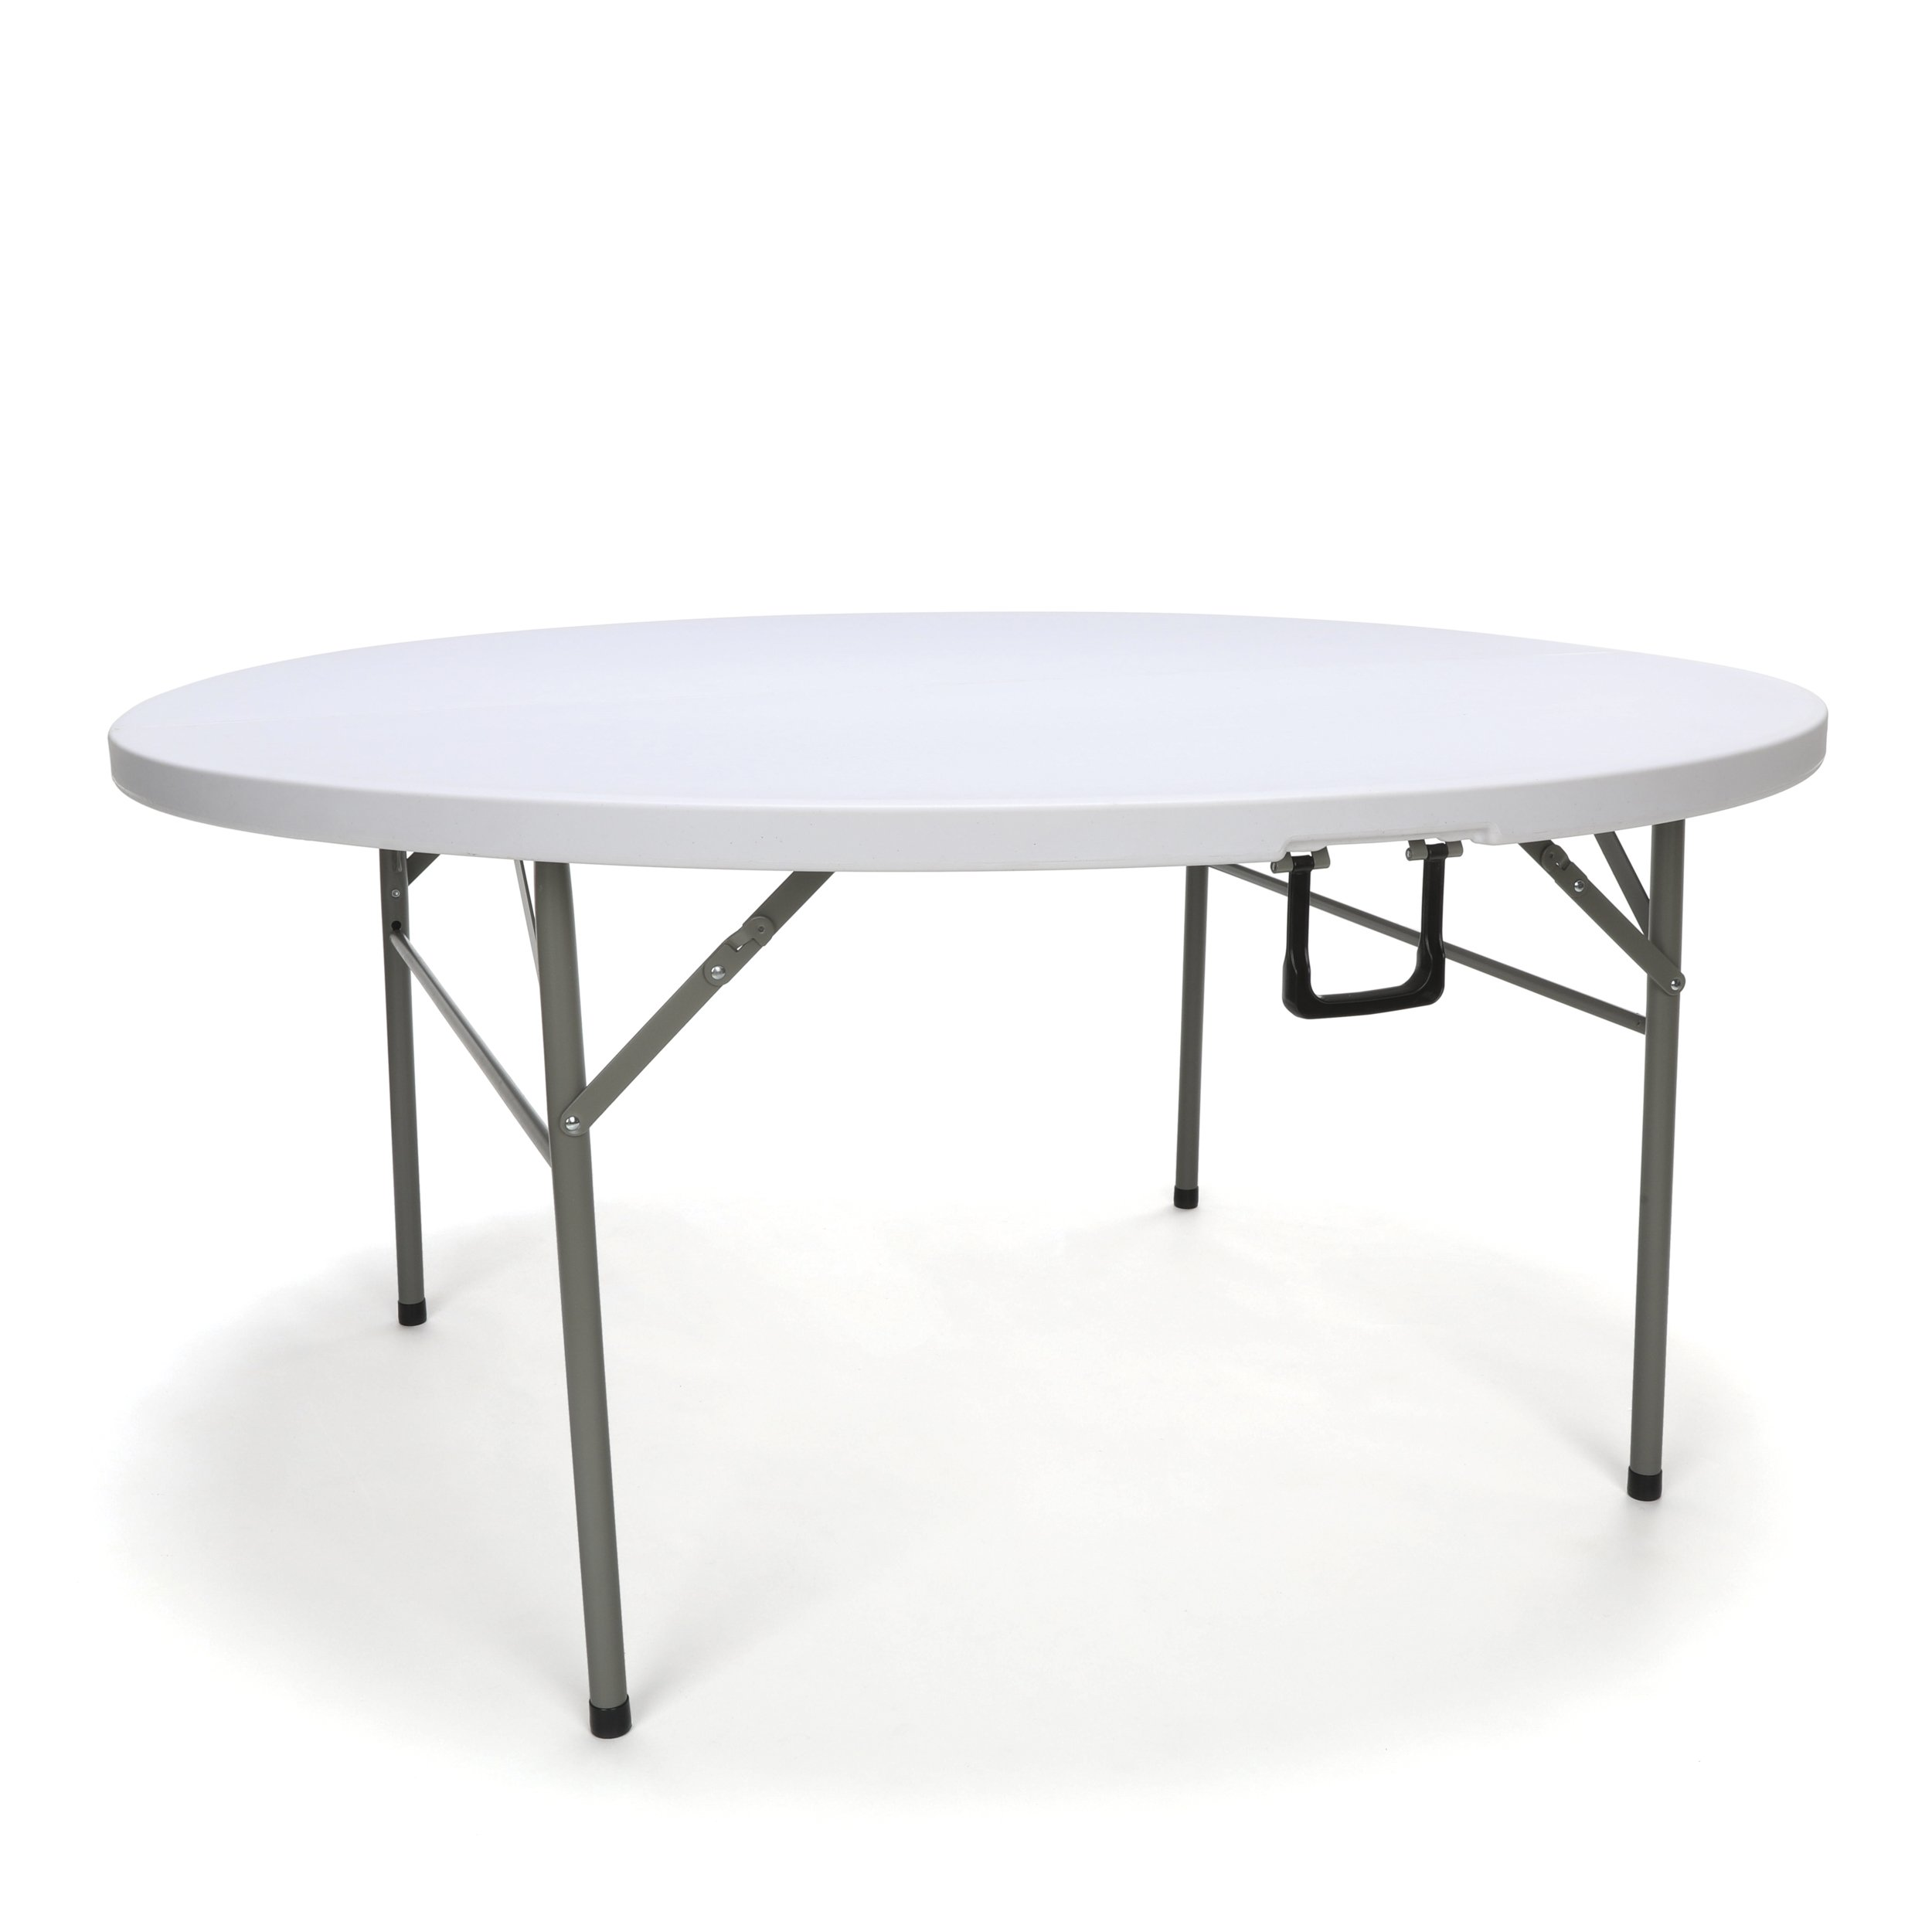 Essentials Multipurpose Folding Utility Table - Sturdy Card/Conference/Office/Craft Center Folding Plastic Table, 60'' Wide, 60'' Length, White (ESS-5060RF)